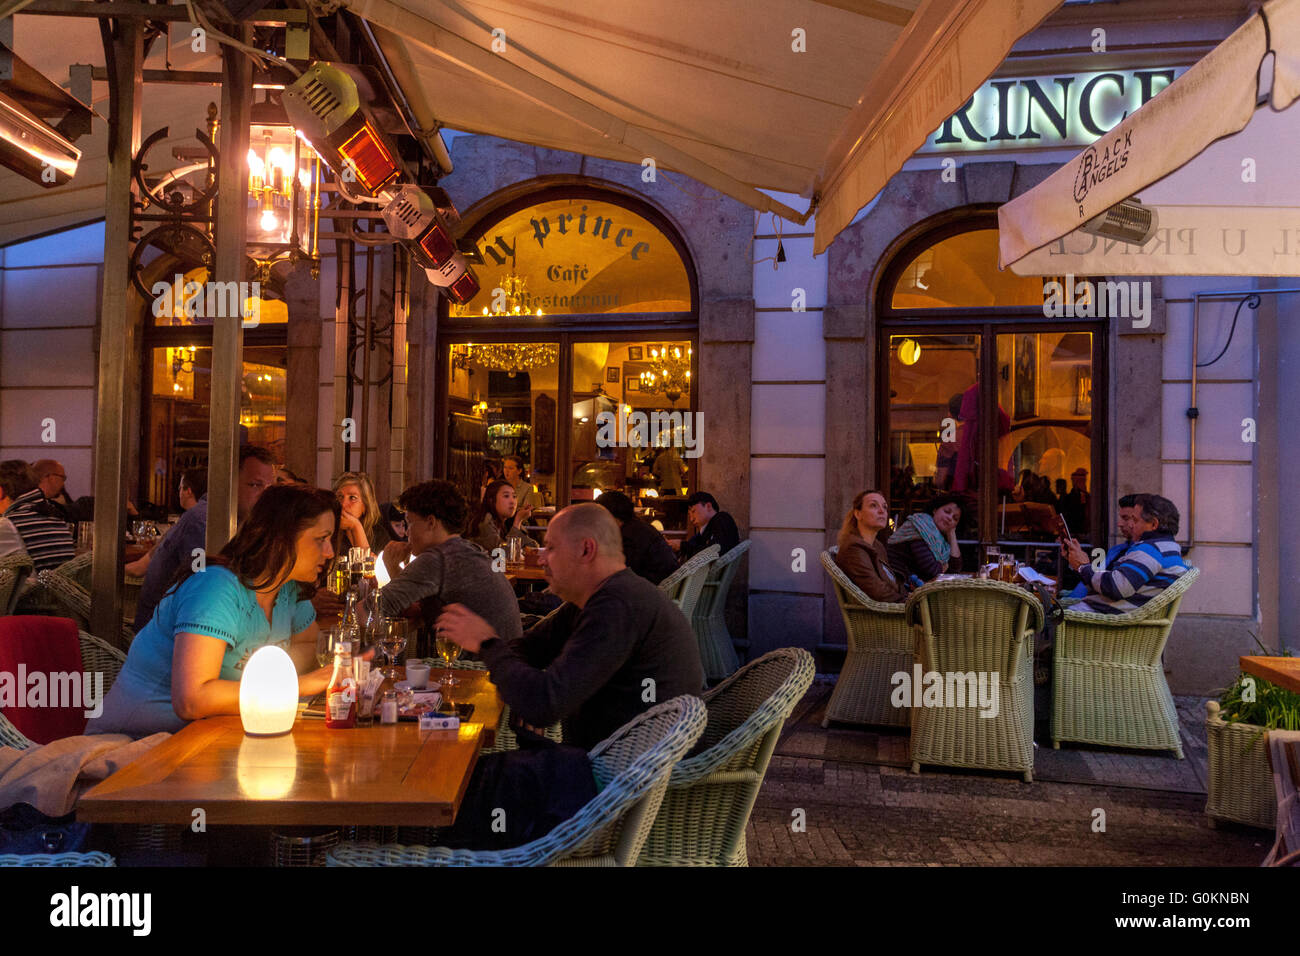 Restaurant u prince in prague old town czech republic for Terrace u prince prague